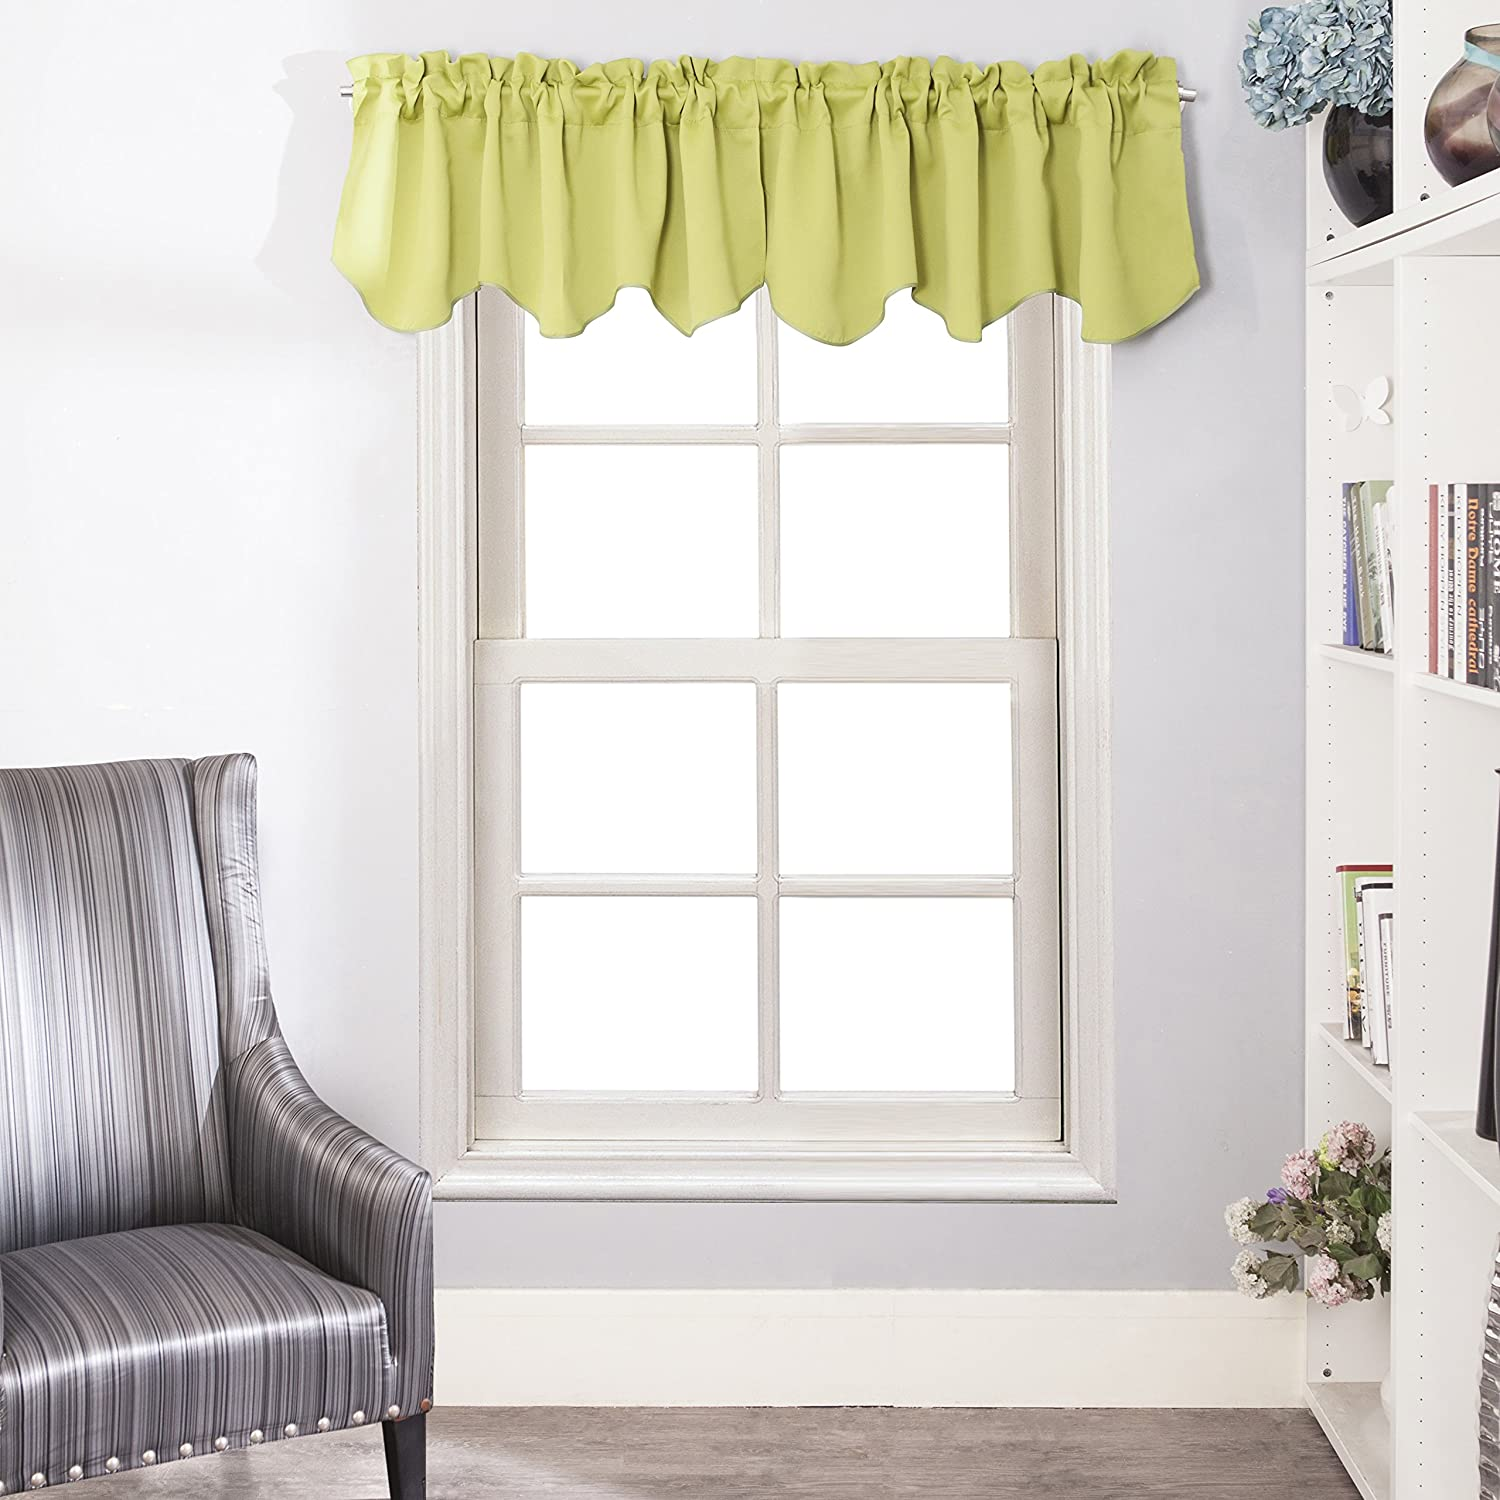 Rod Pocket Scalloped Valances for Kitchen - Aquazolax Blackout Curtains Window Treatments Valances